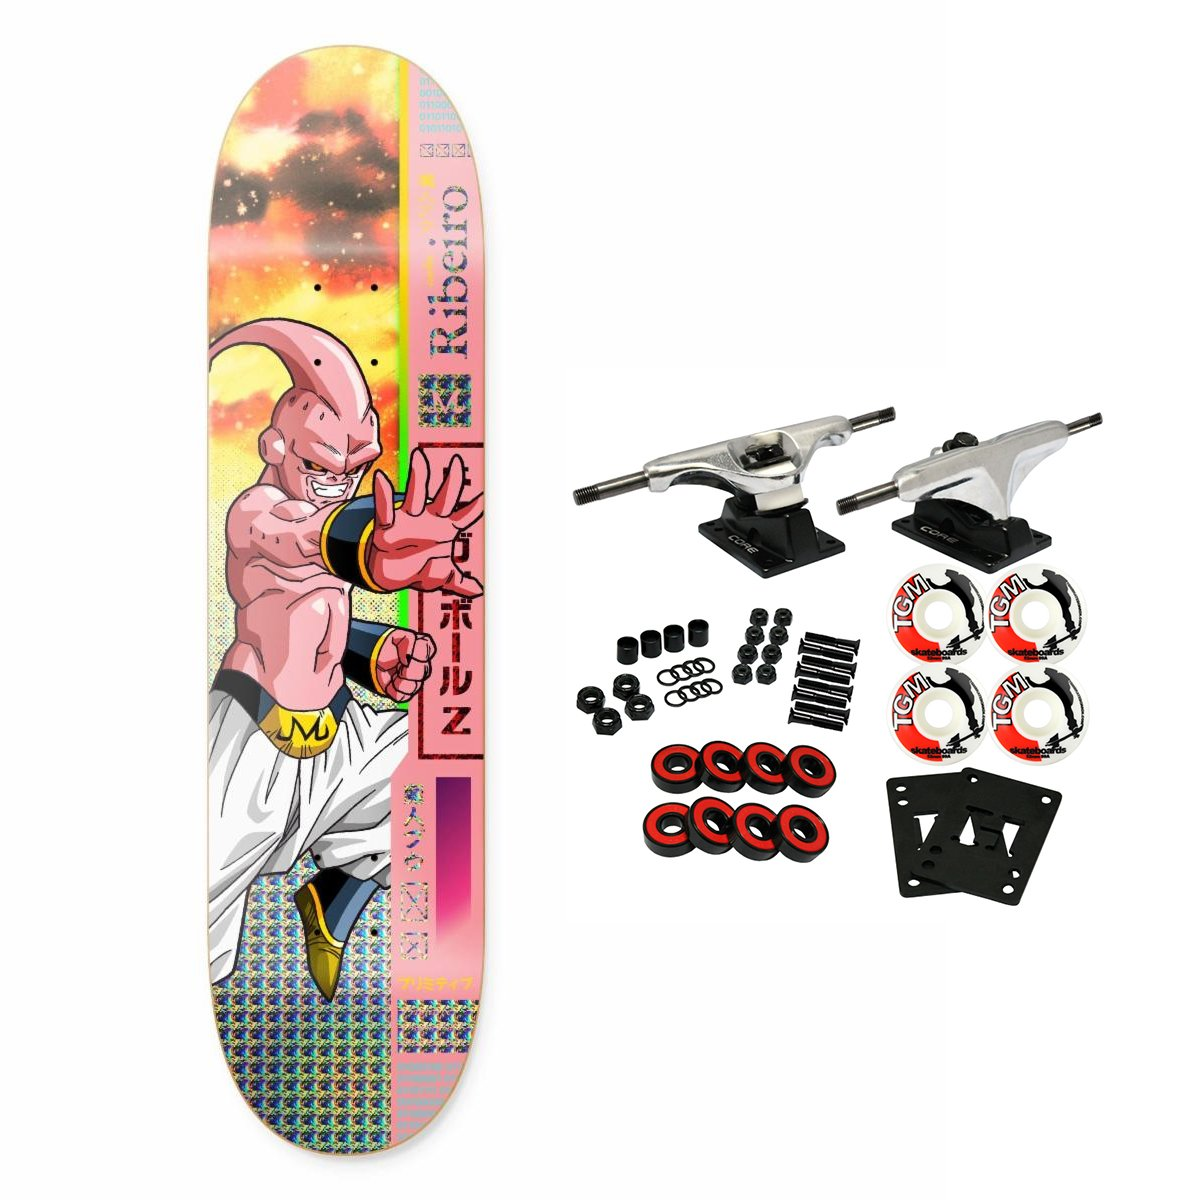 Primitive Dragon Ball Z Riberio Buu Skateboard Complete 8.0'' by Primitive